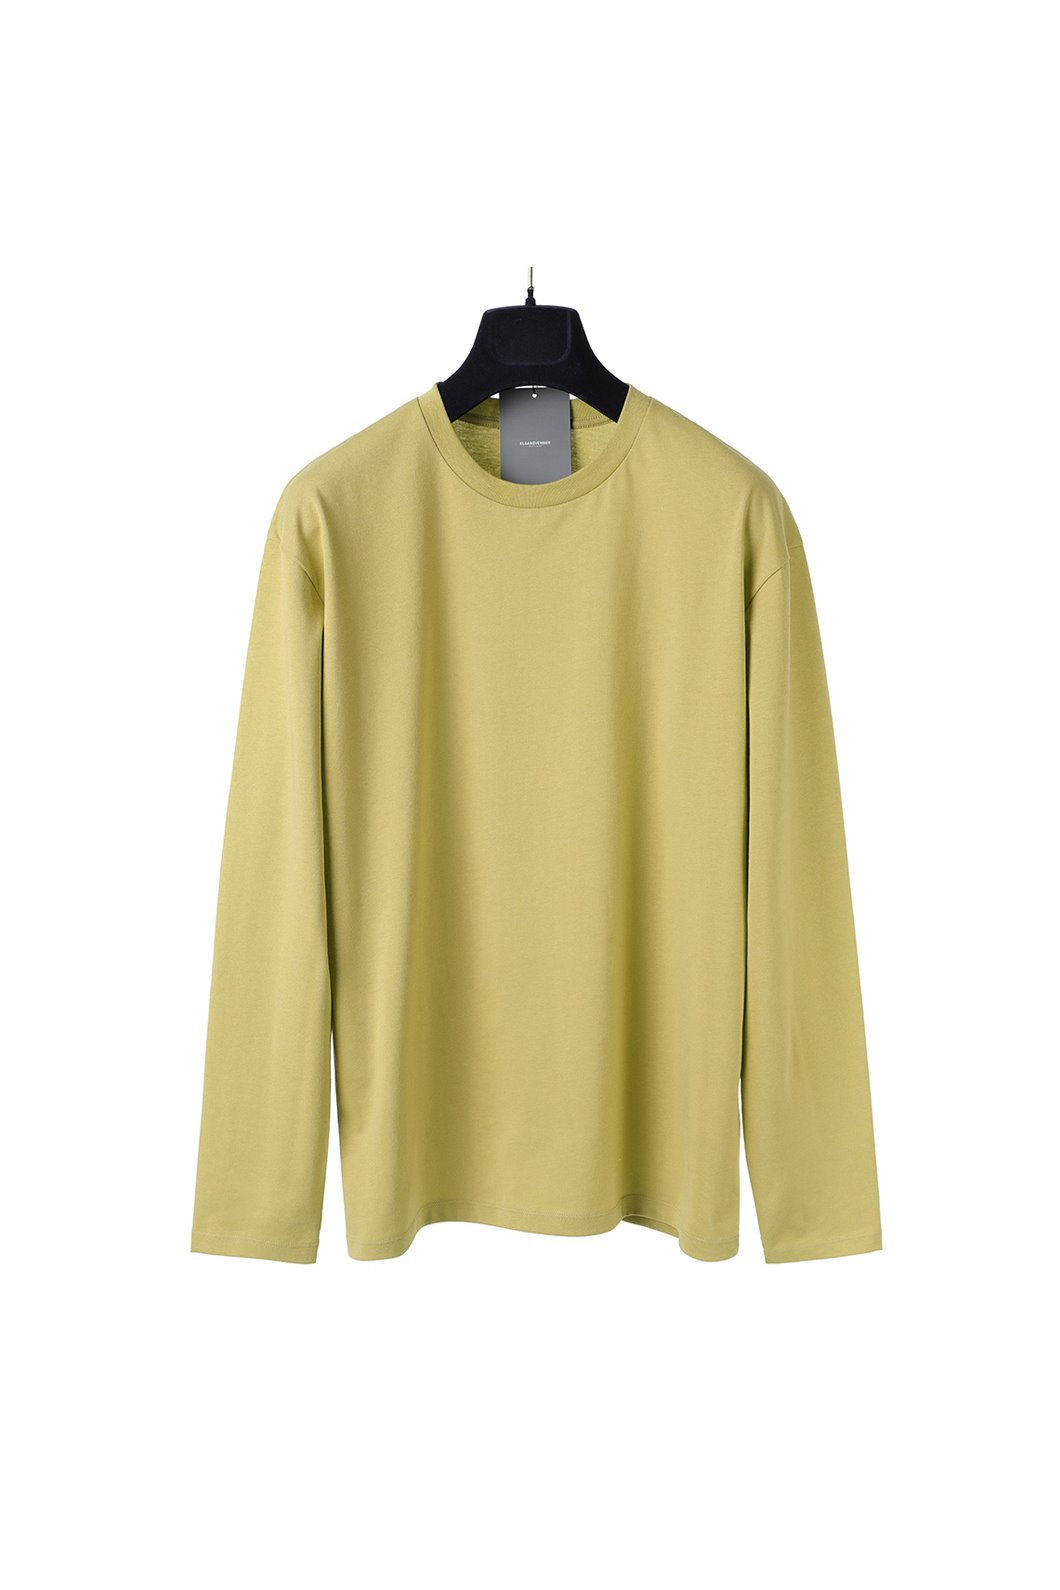 Silket Long Sleeves T-Shirts-11Color